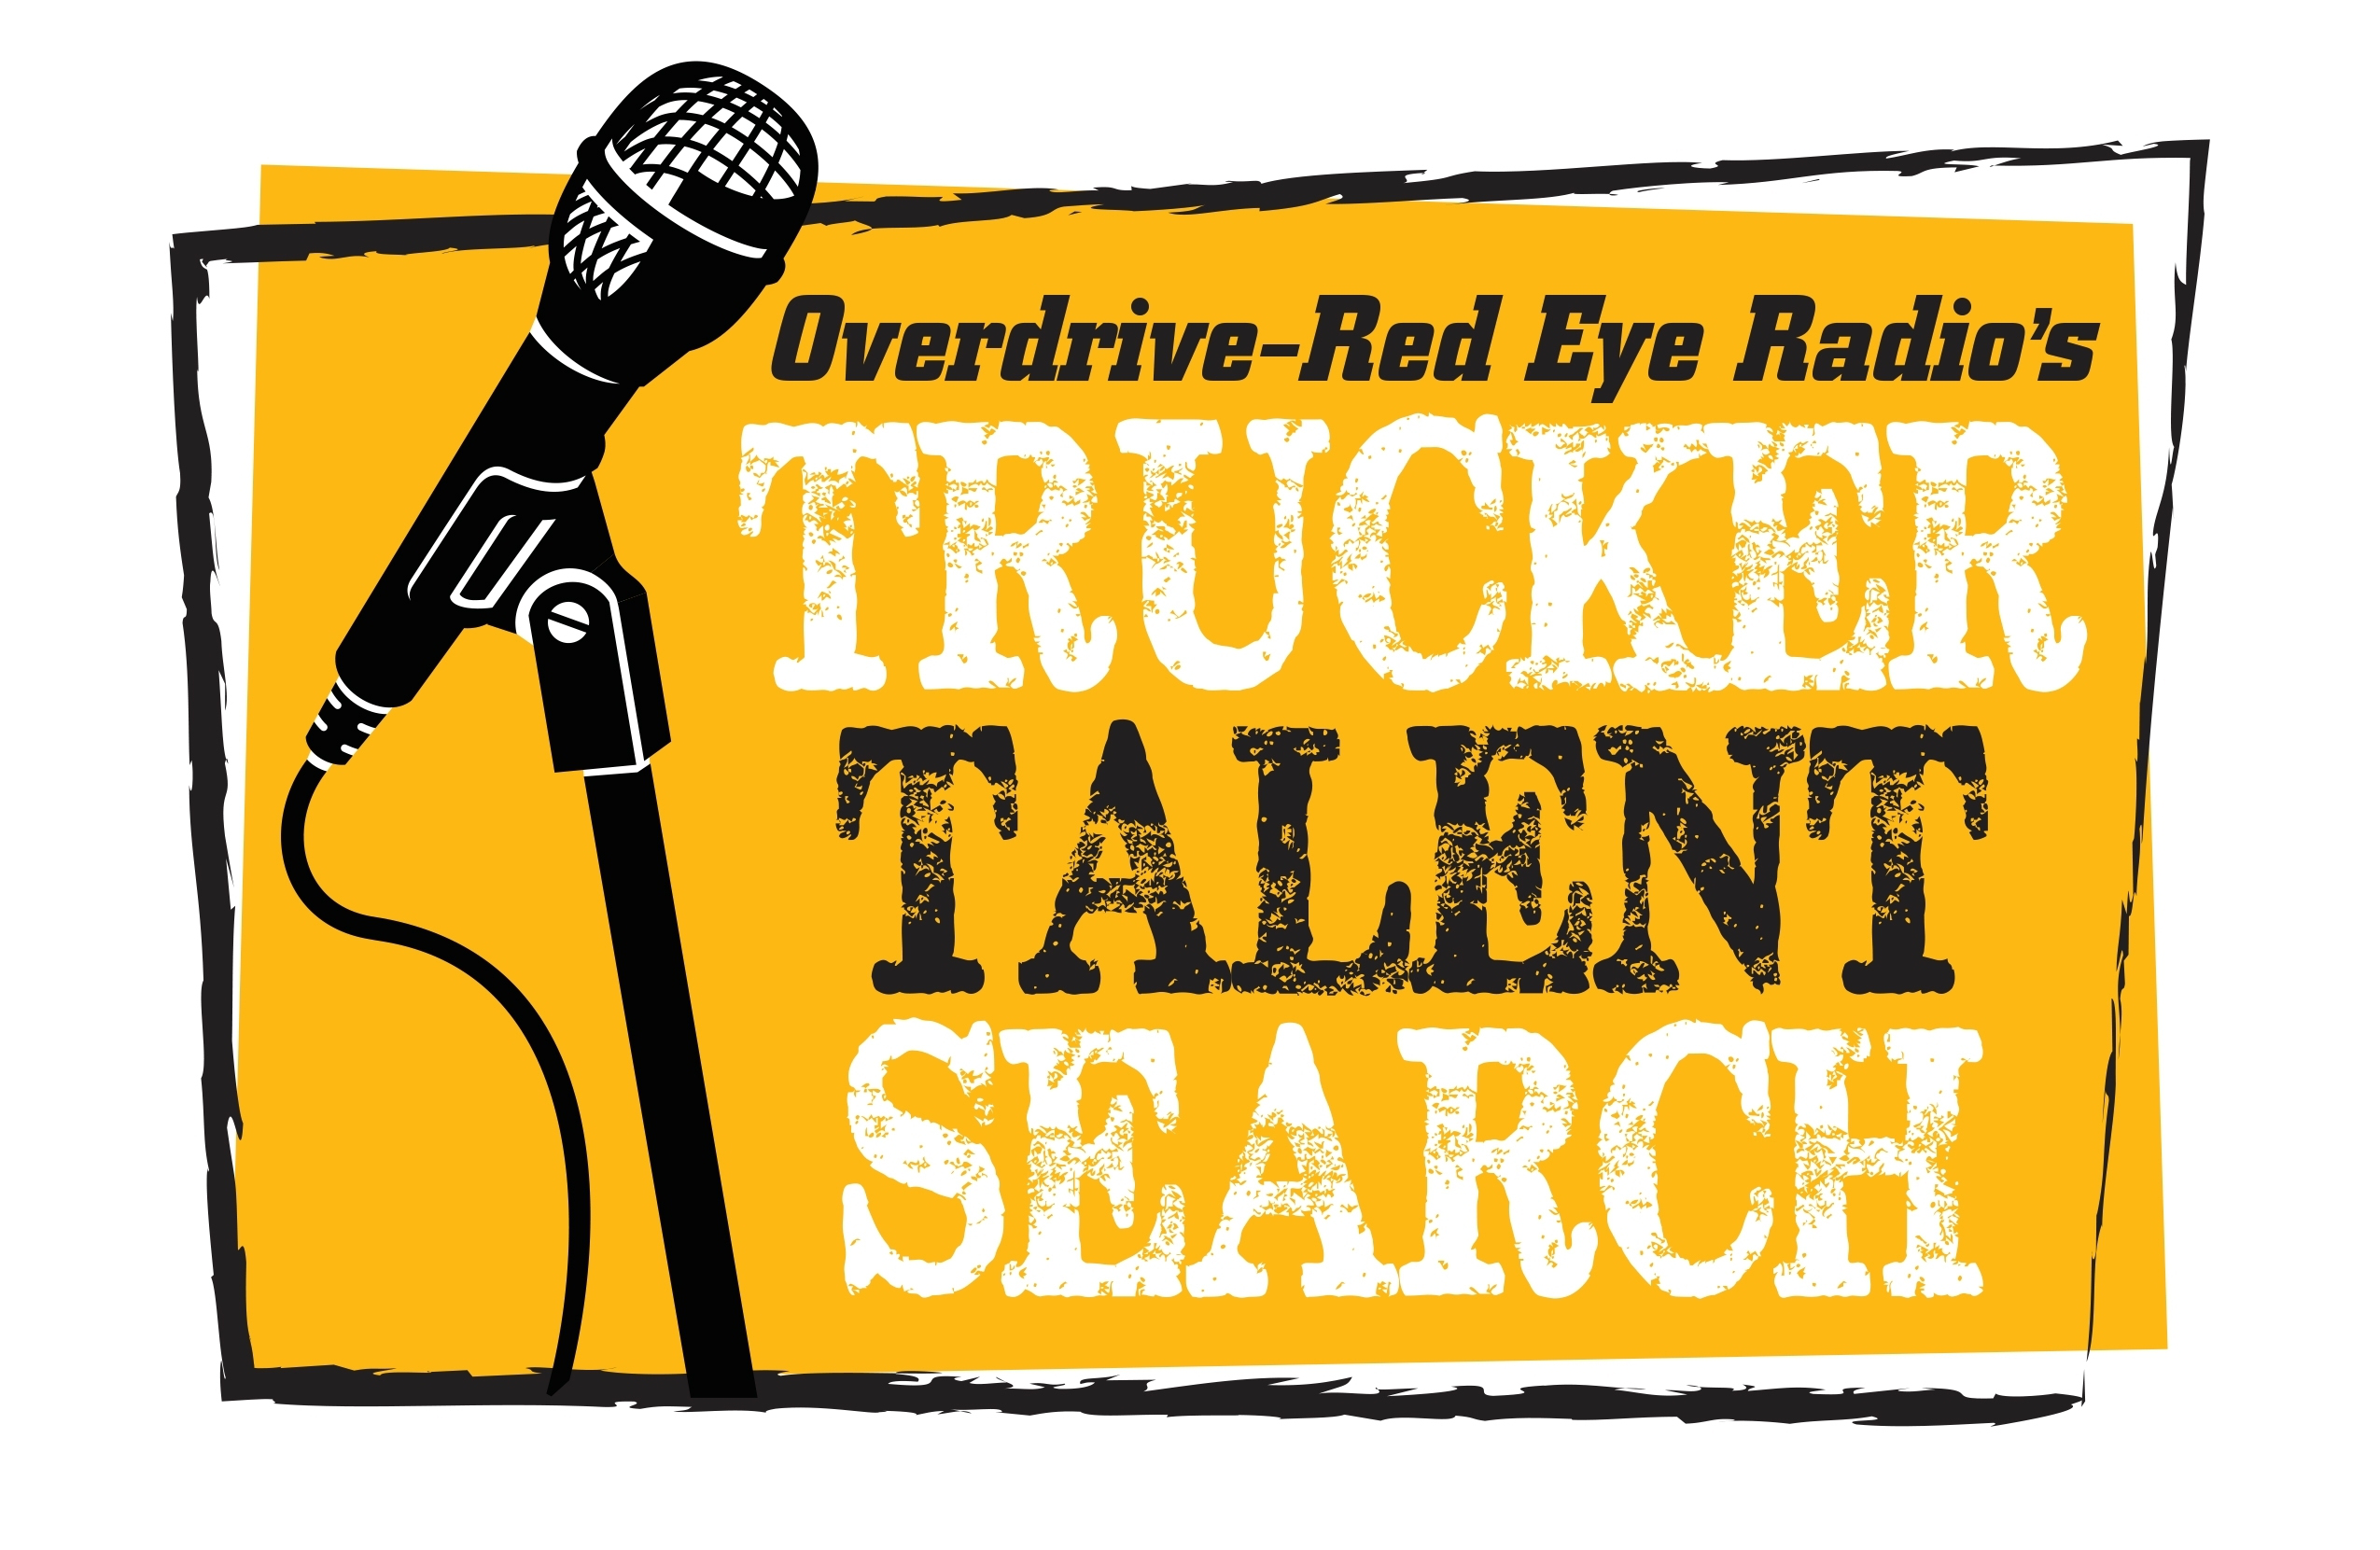 Truckers_Talent_Search_Redeye_Radio